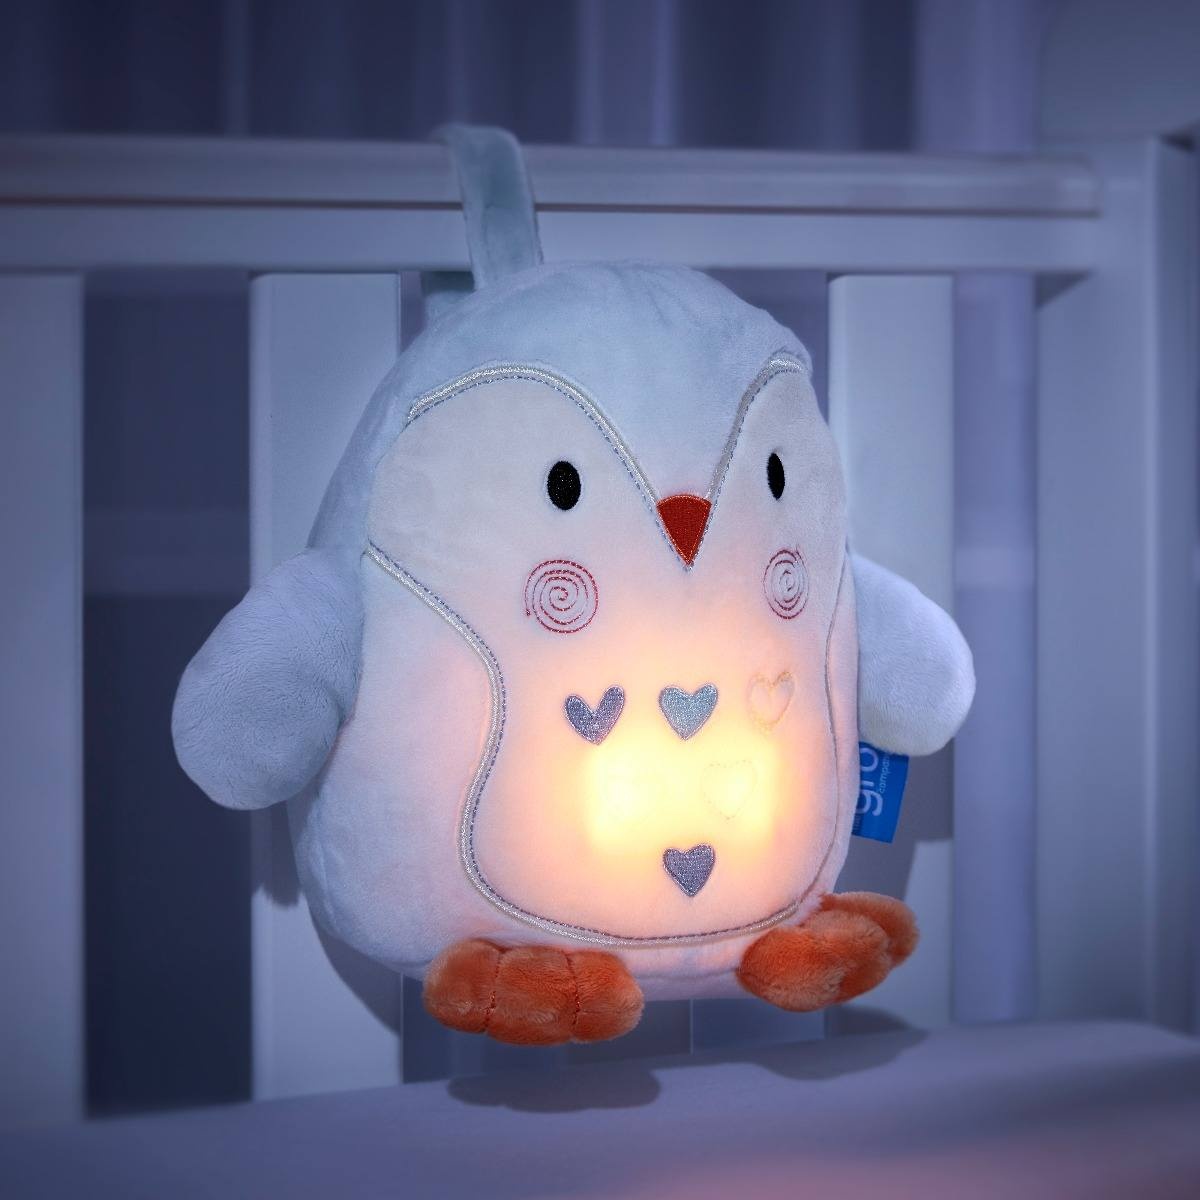 percy-penguin-grofriend-glowing-in-dark-attached-to-cot